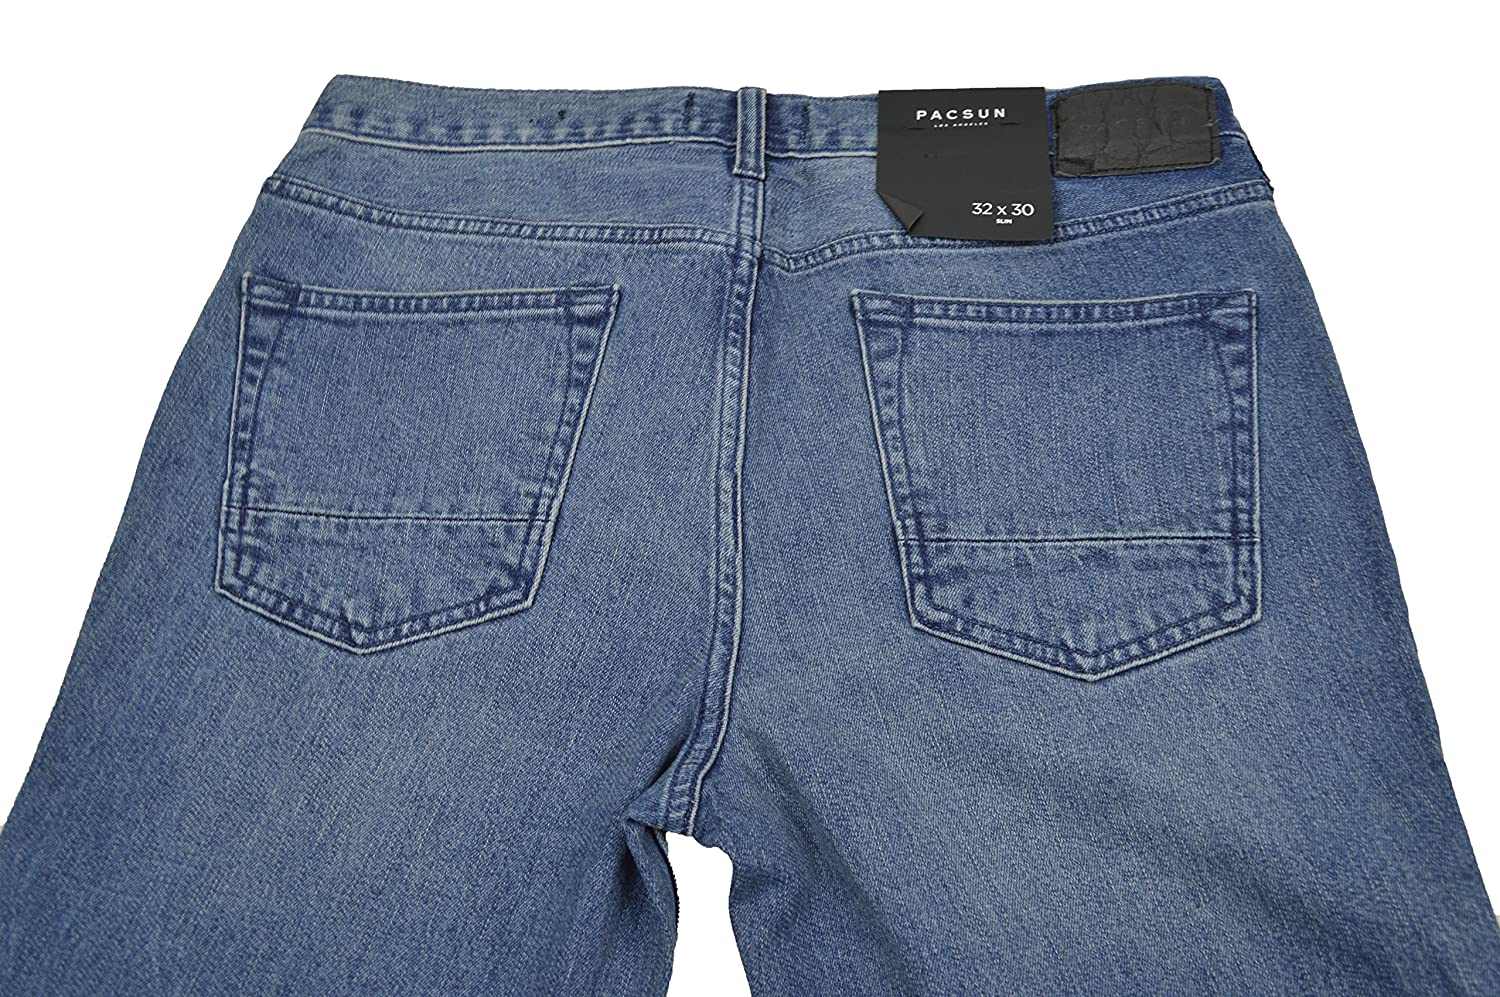 PacSun Slim Active Stretch Medium Denim Jeans at Amazon Men s Clothing  store  62d77a2eea